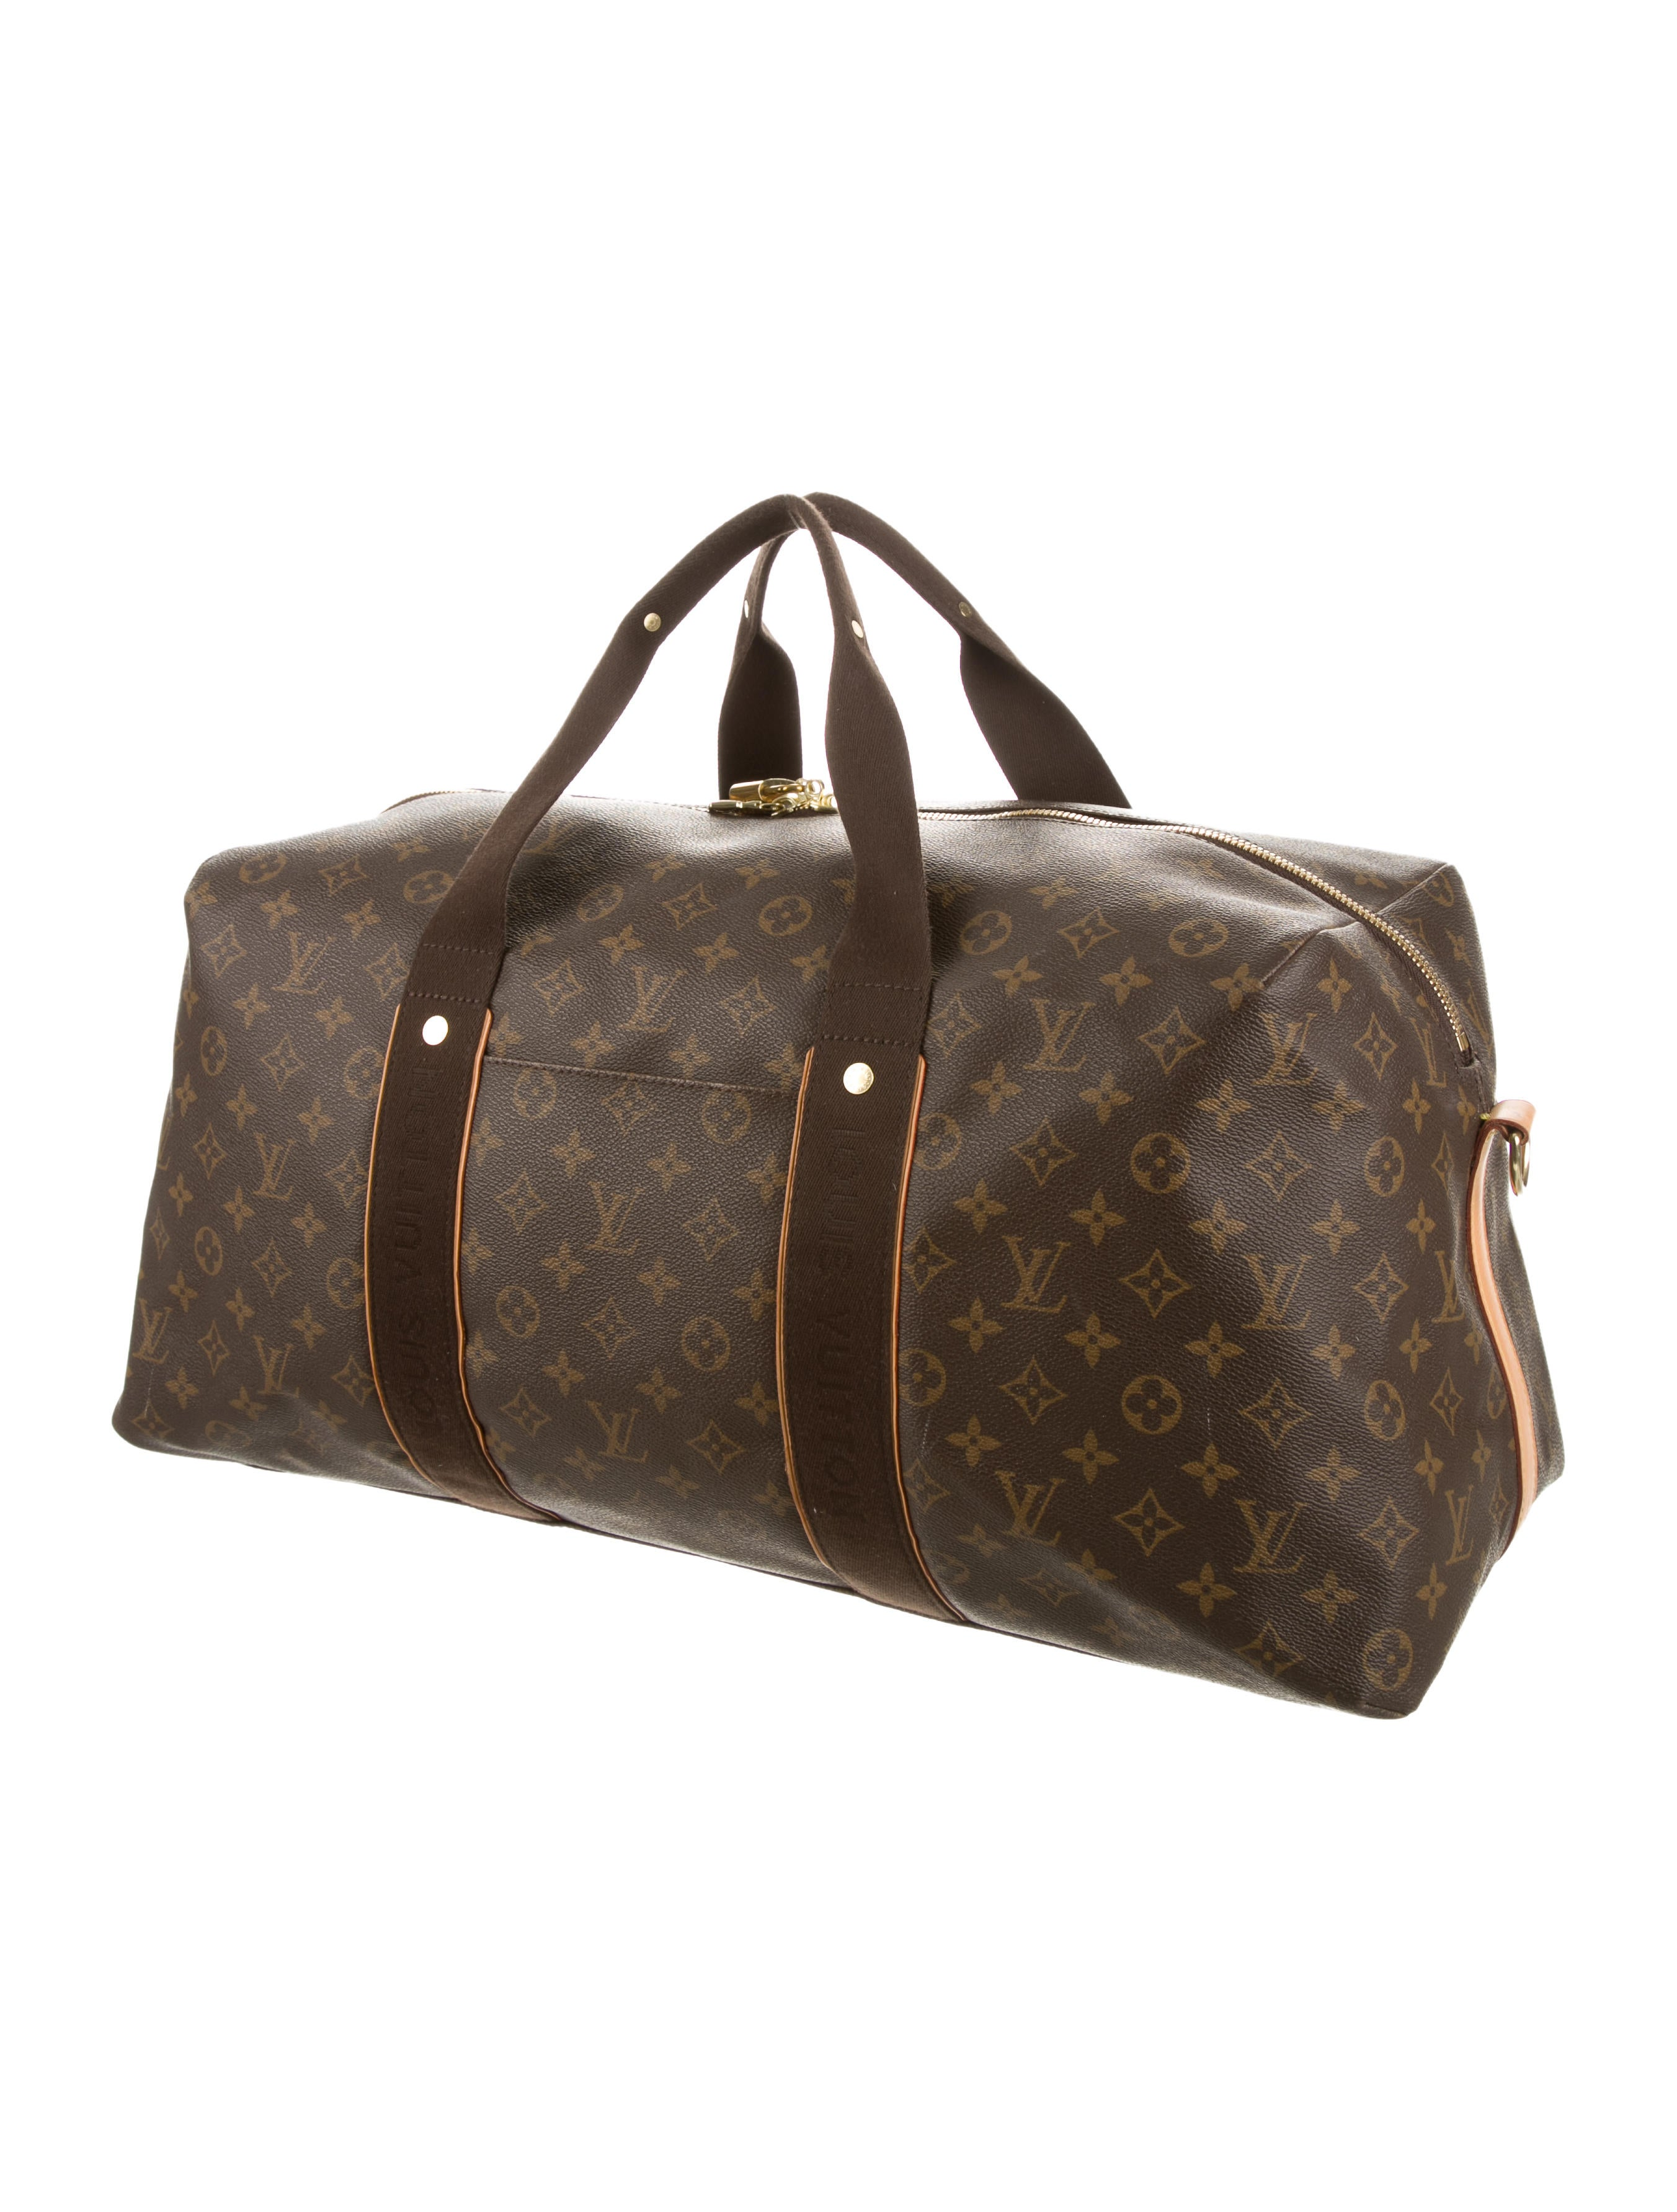 louis vuitton monogram beaubourg weekender handbags lou83851 the realreal. Black Bedroom Furniture Sets. Home Design Ideas